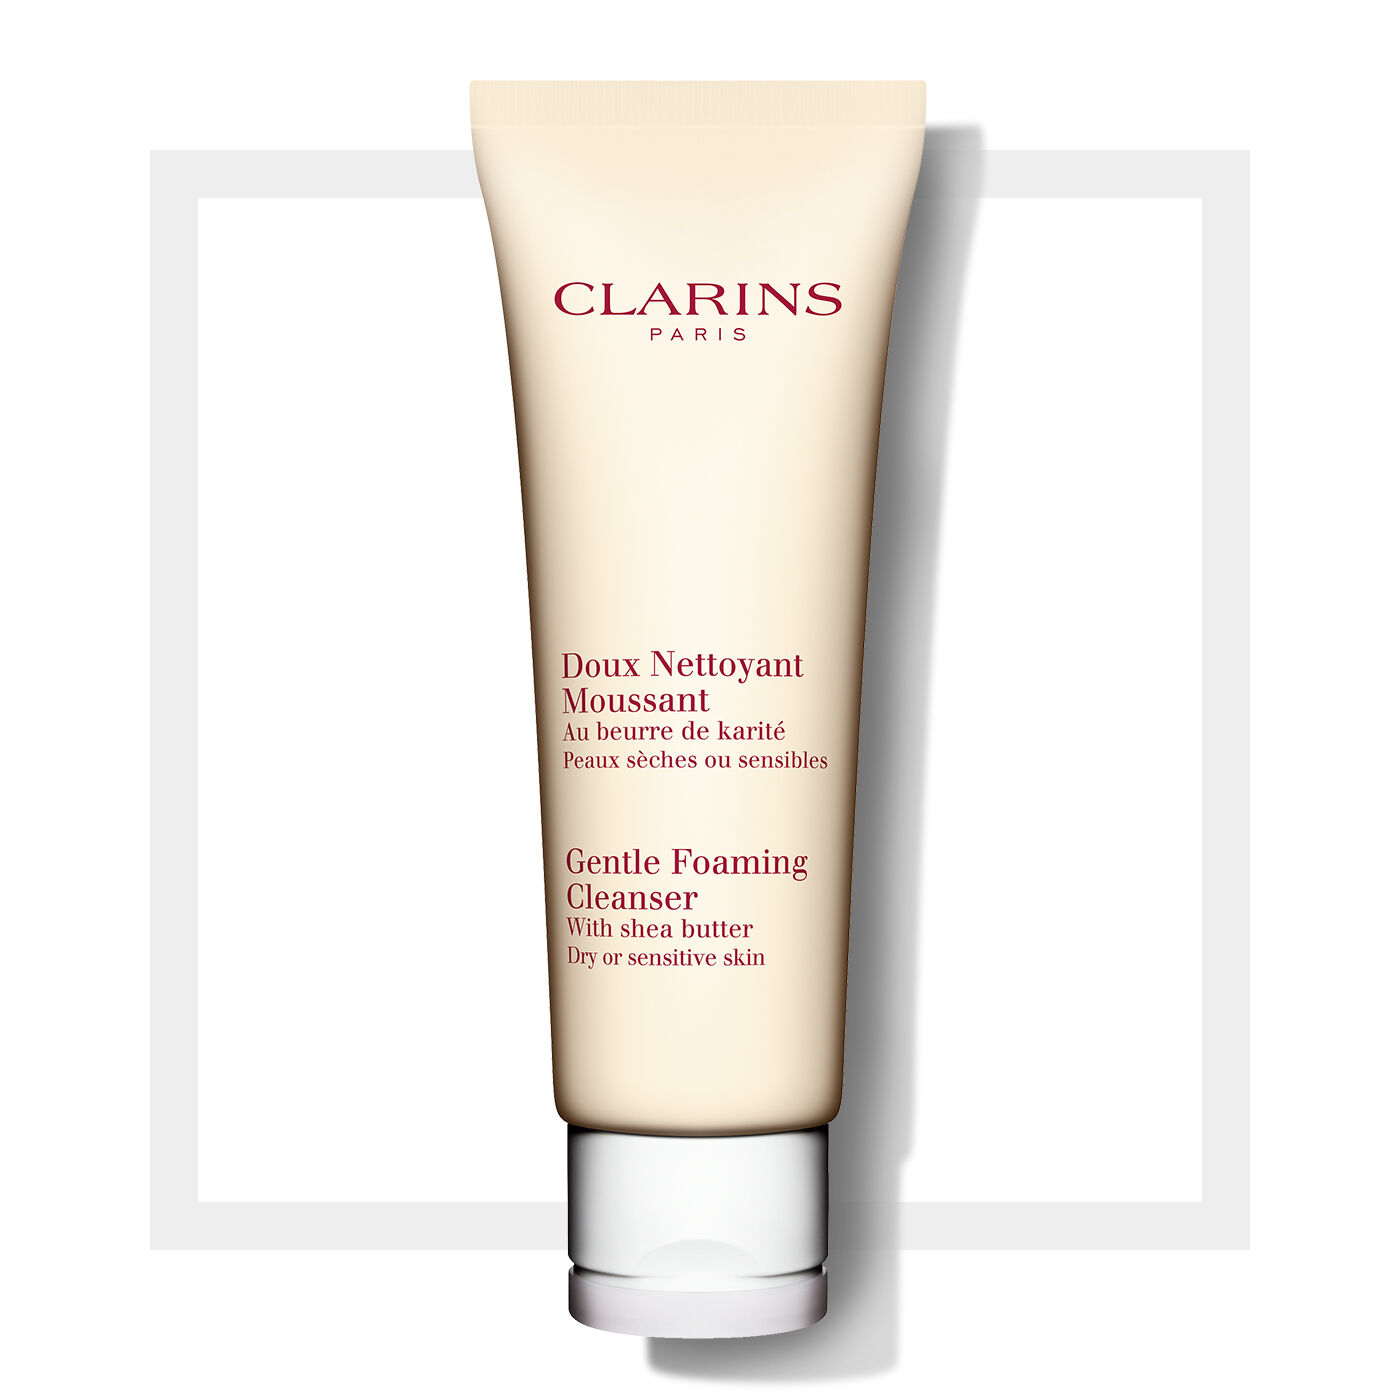 Gentle Foaming Cleanser (Dry or Sensitive Skin)